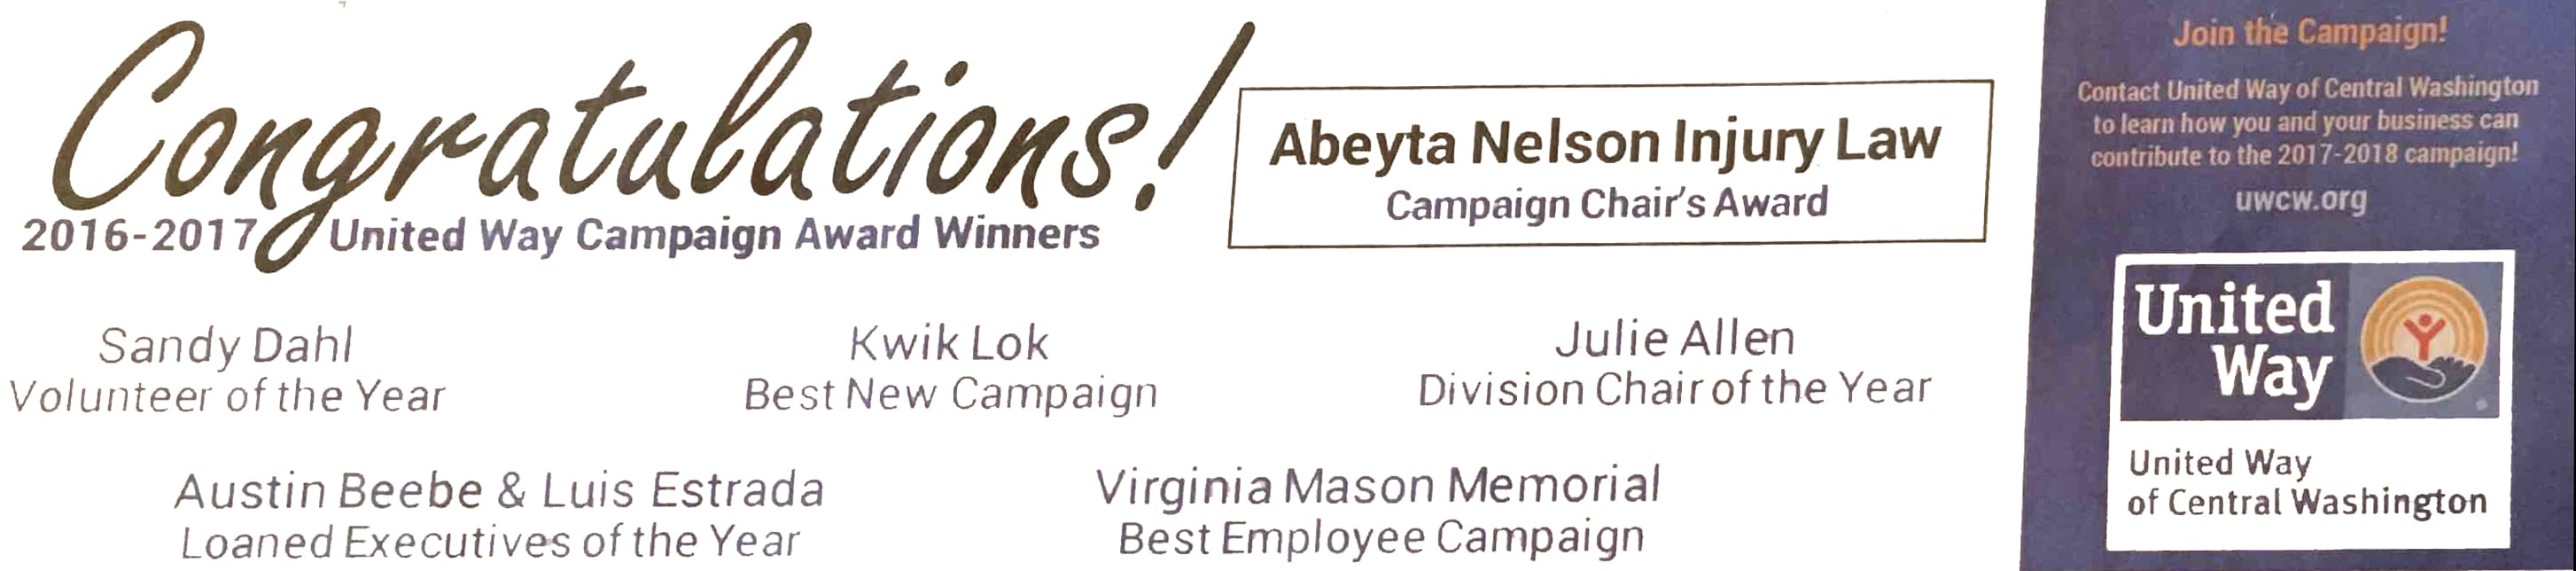 Abeyta Nelson Injury Law Honored by United Way of Central Washington